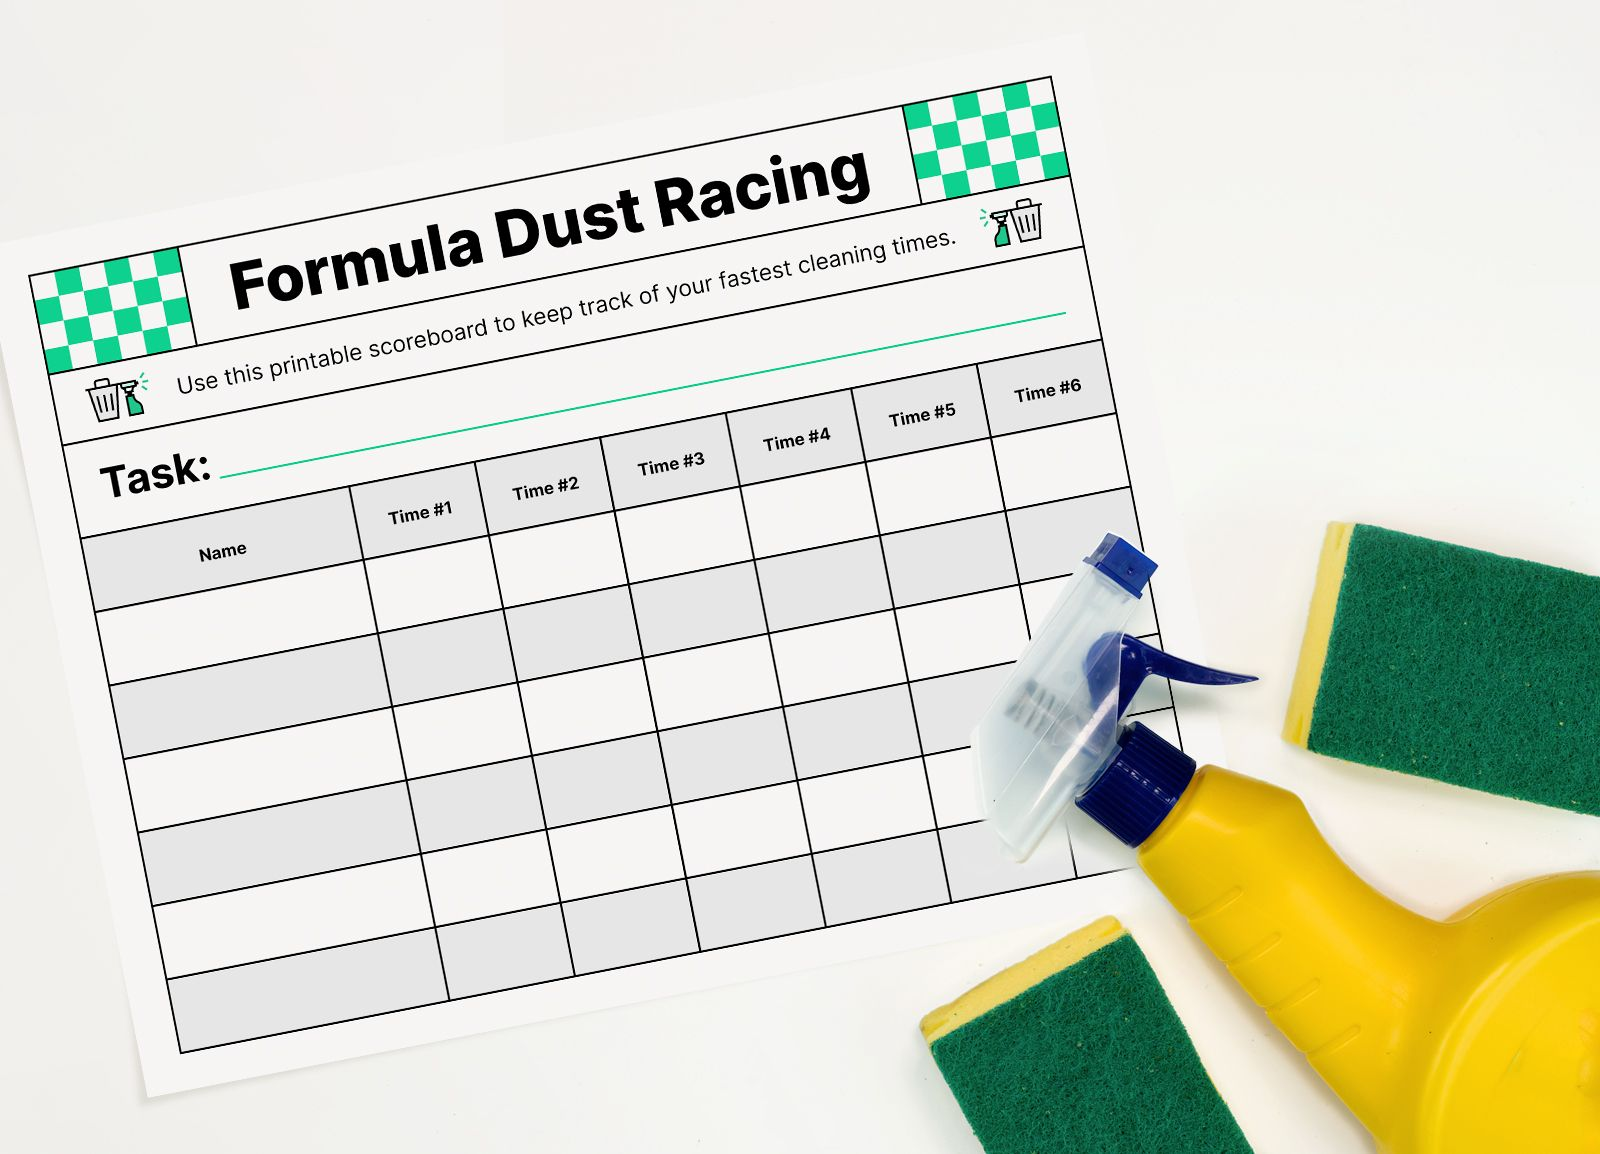 A printable score board sits among cleaning supplies like a spray bottle and sponges.